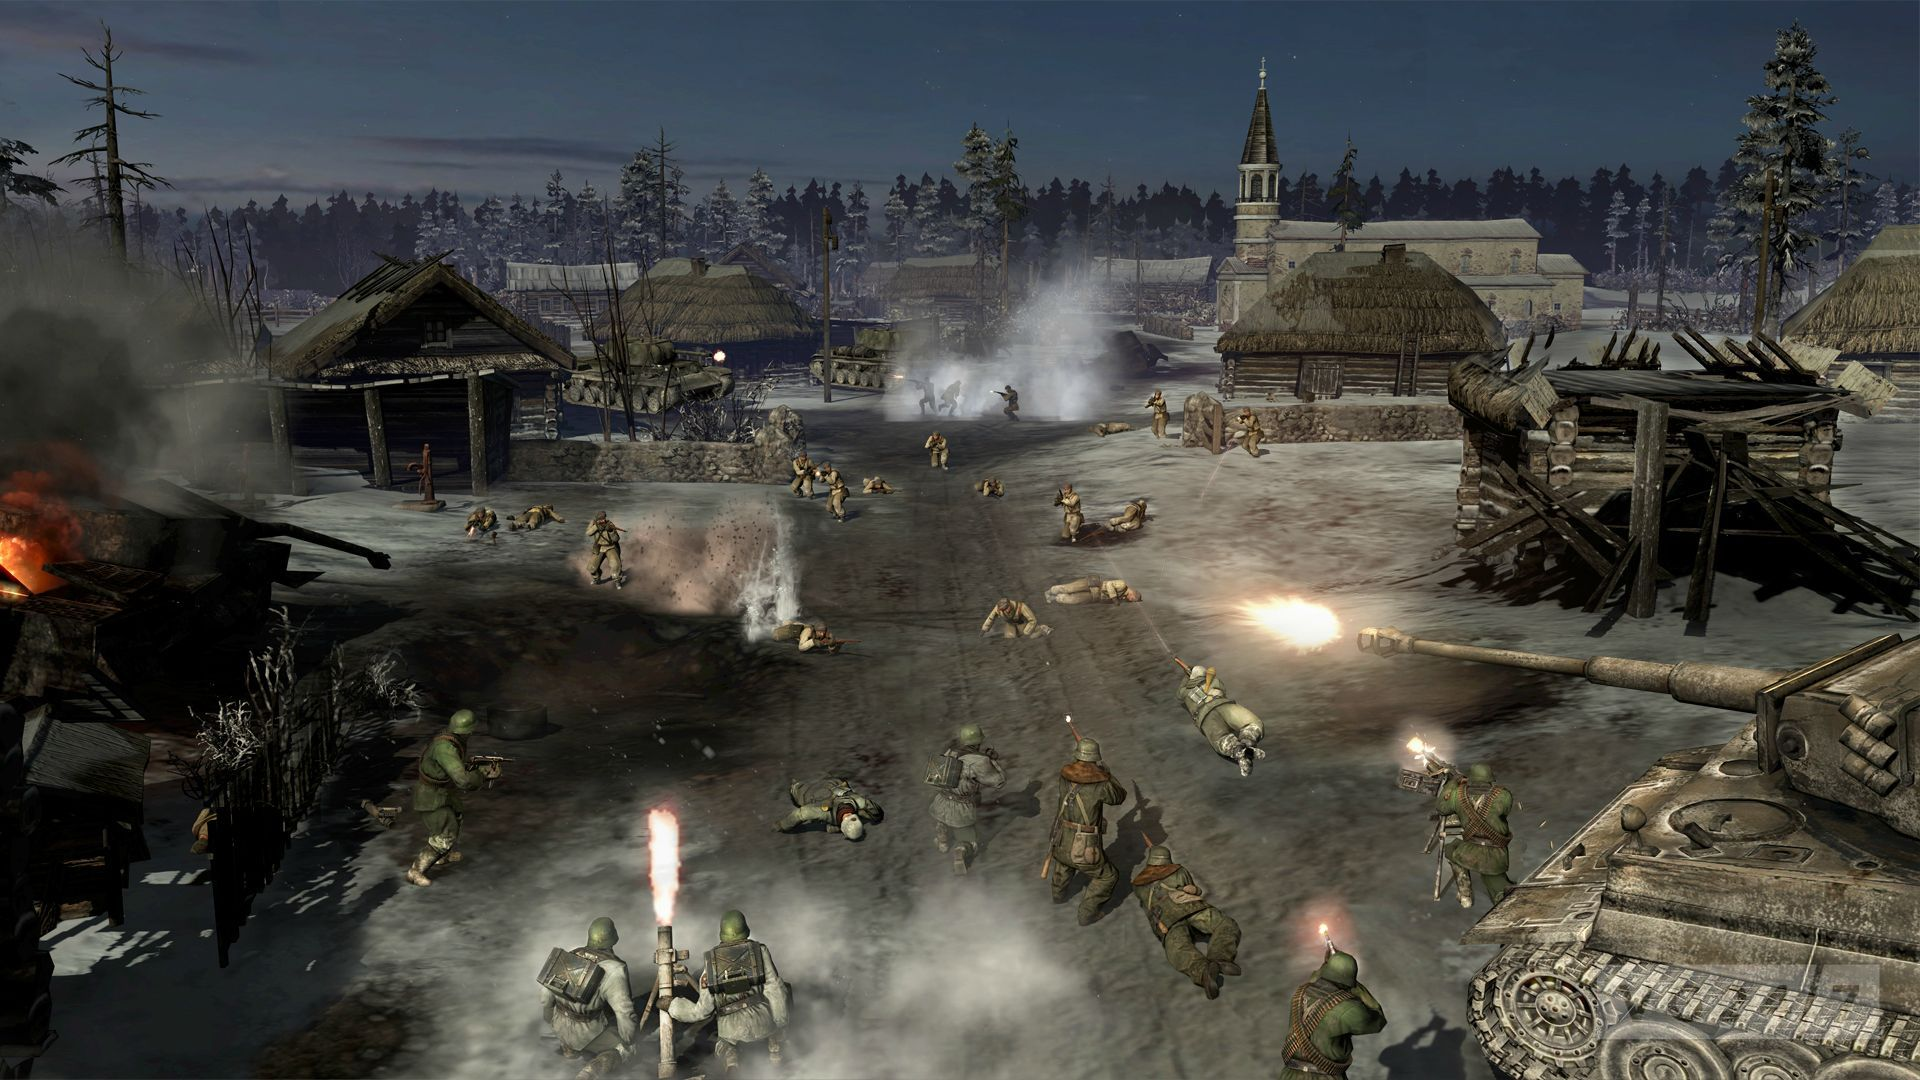 Company of Heroes 2 shots show a cold, Eastern Front